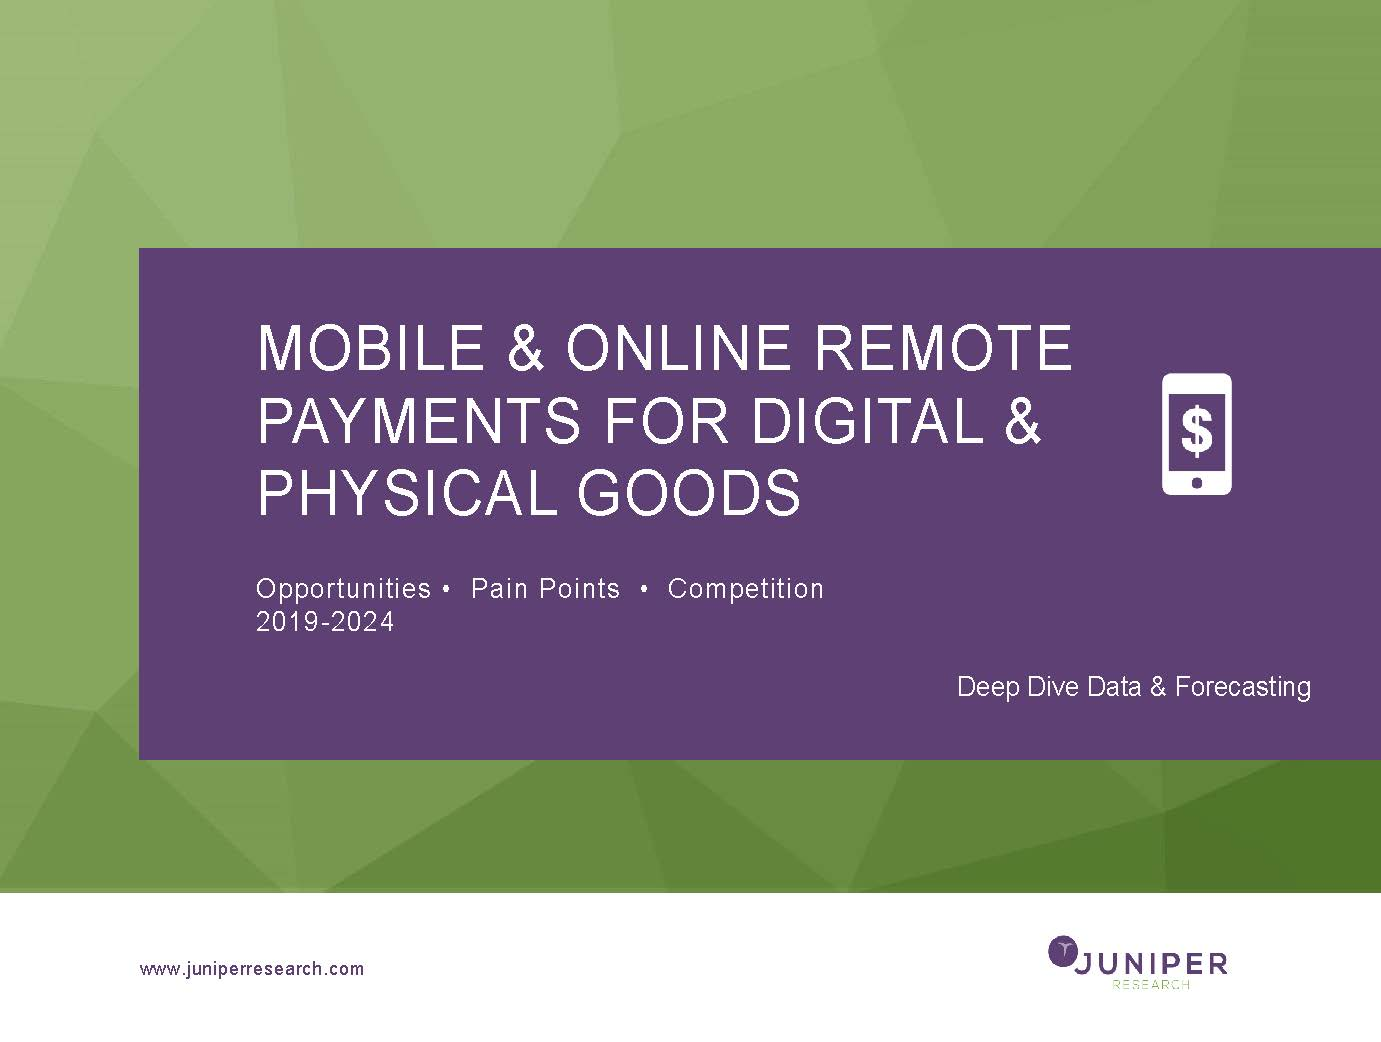 Mobile & Online Remote Payments for Digital & Physical Goods: Deep Dive Data & Forecasting 2019-2024